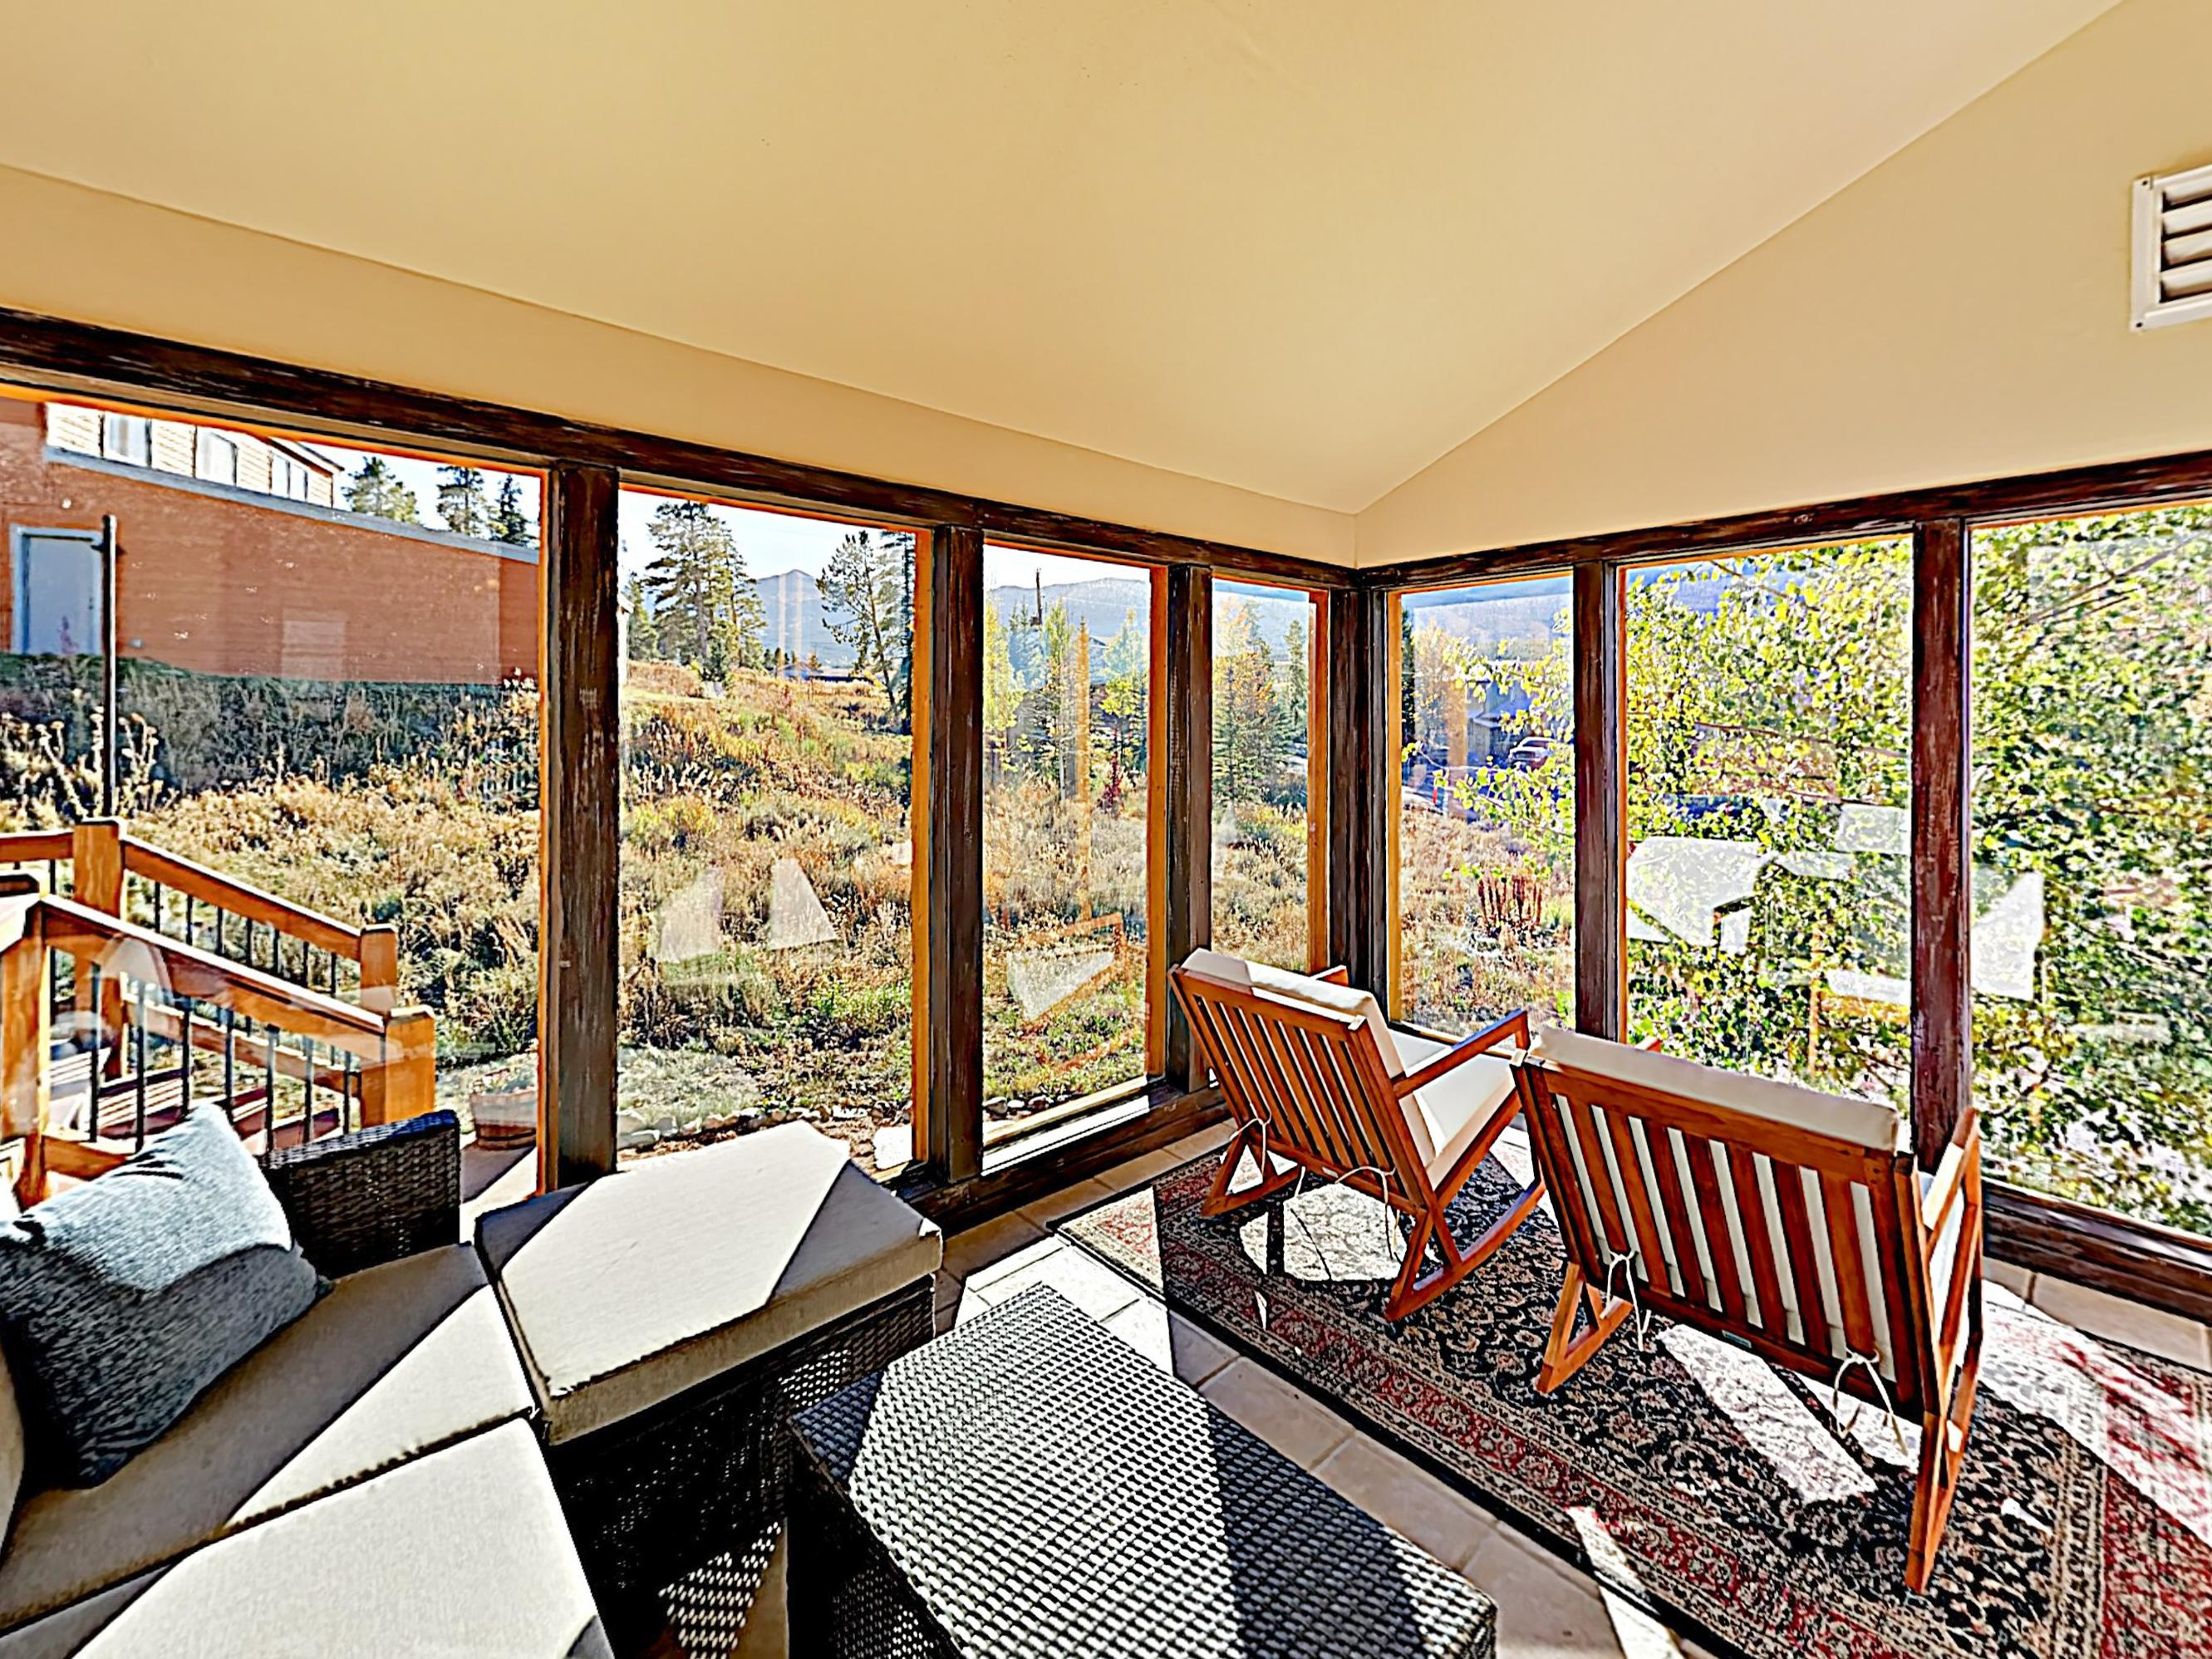 Discover panoramic views in the cozy sunroom.